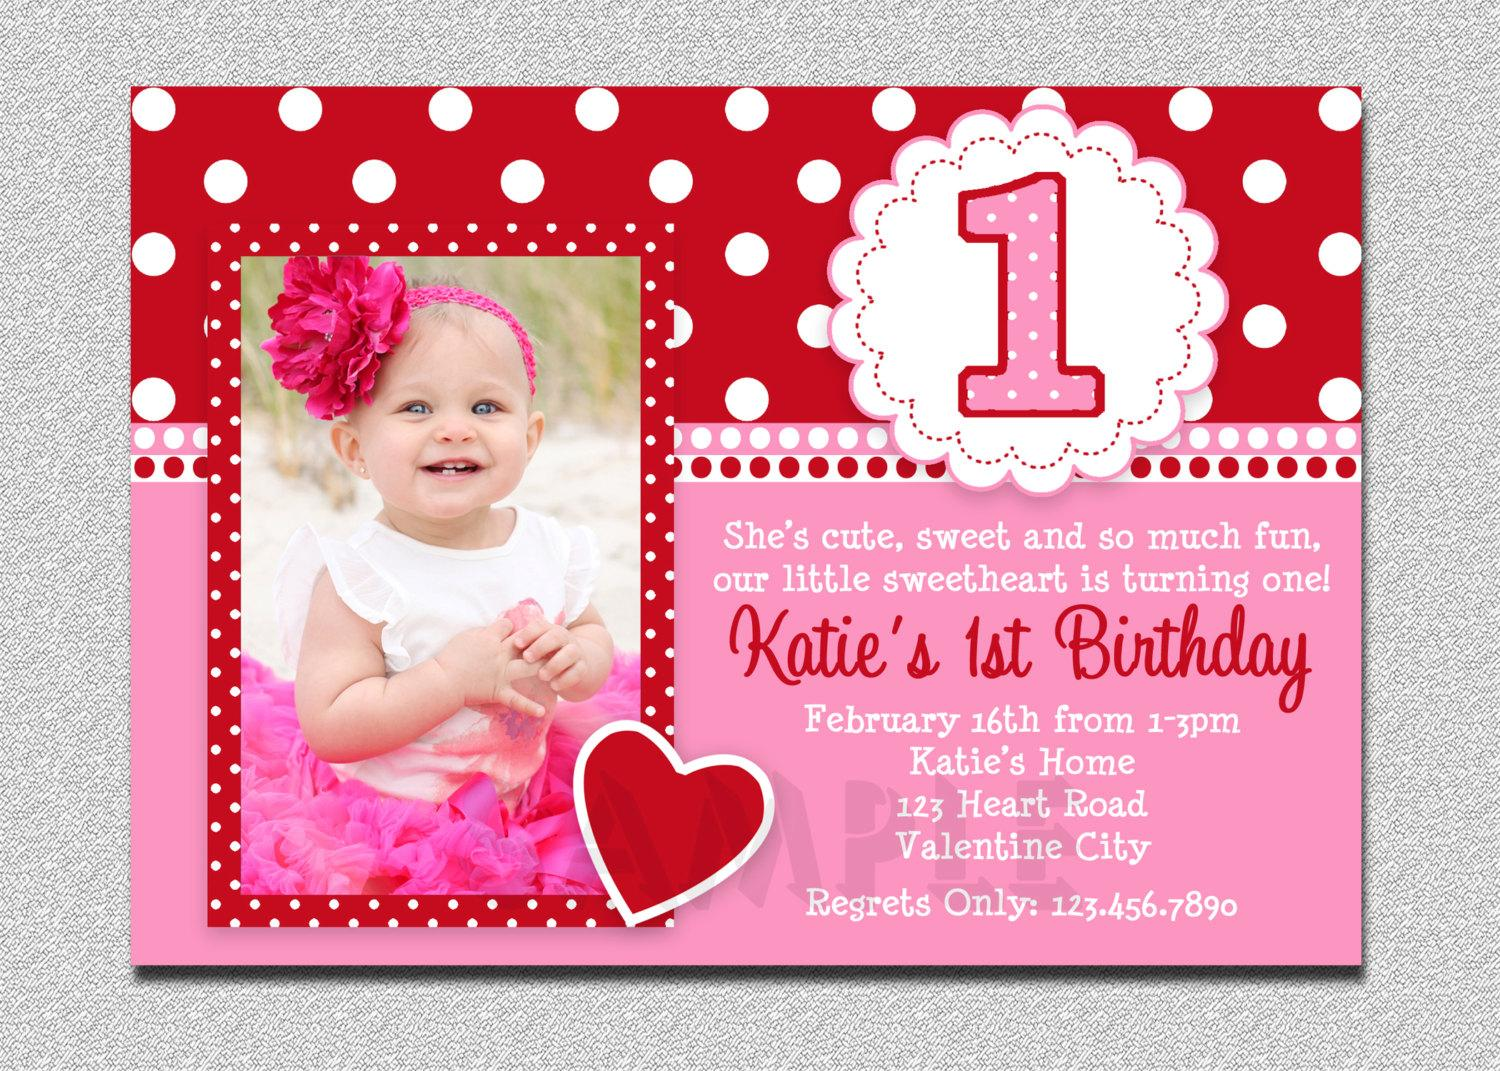 birthday design invitations ; extraordinary-valentine-birthday-invitation-wording-to-design-fetching-Party-invitation-card-based-on-your-style-148162